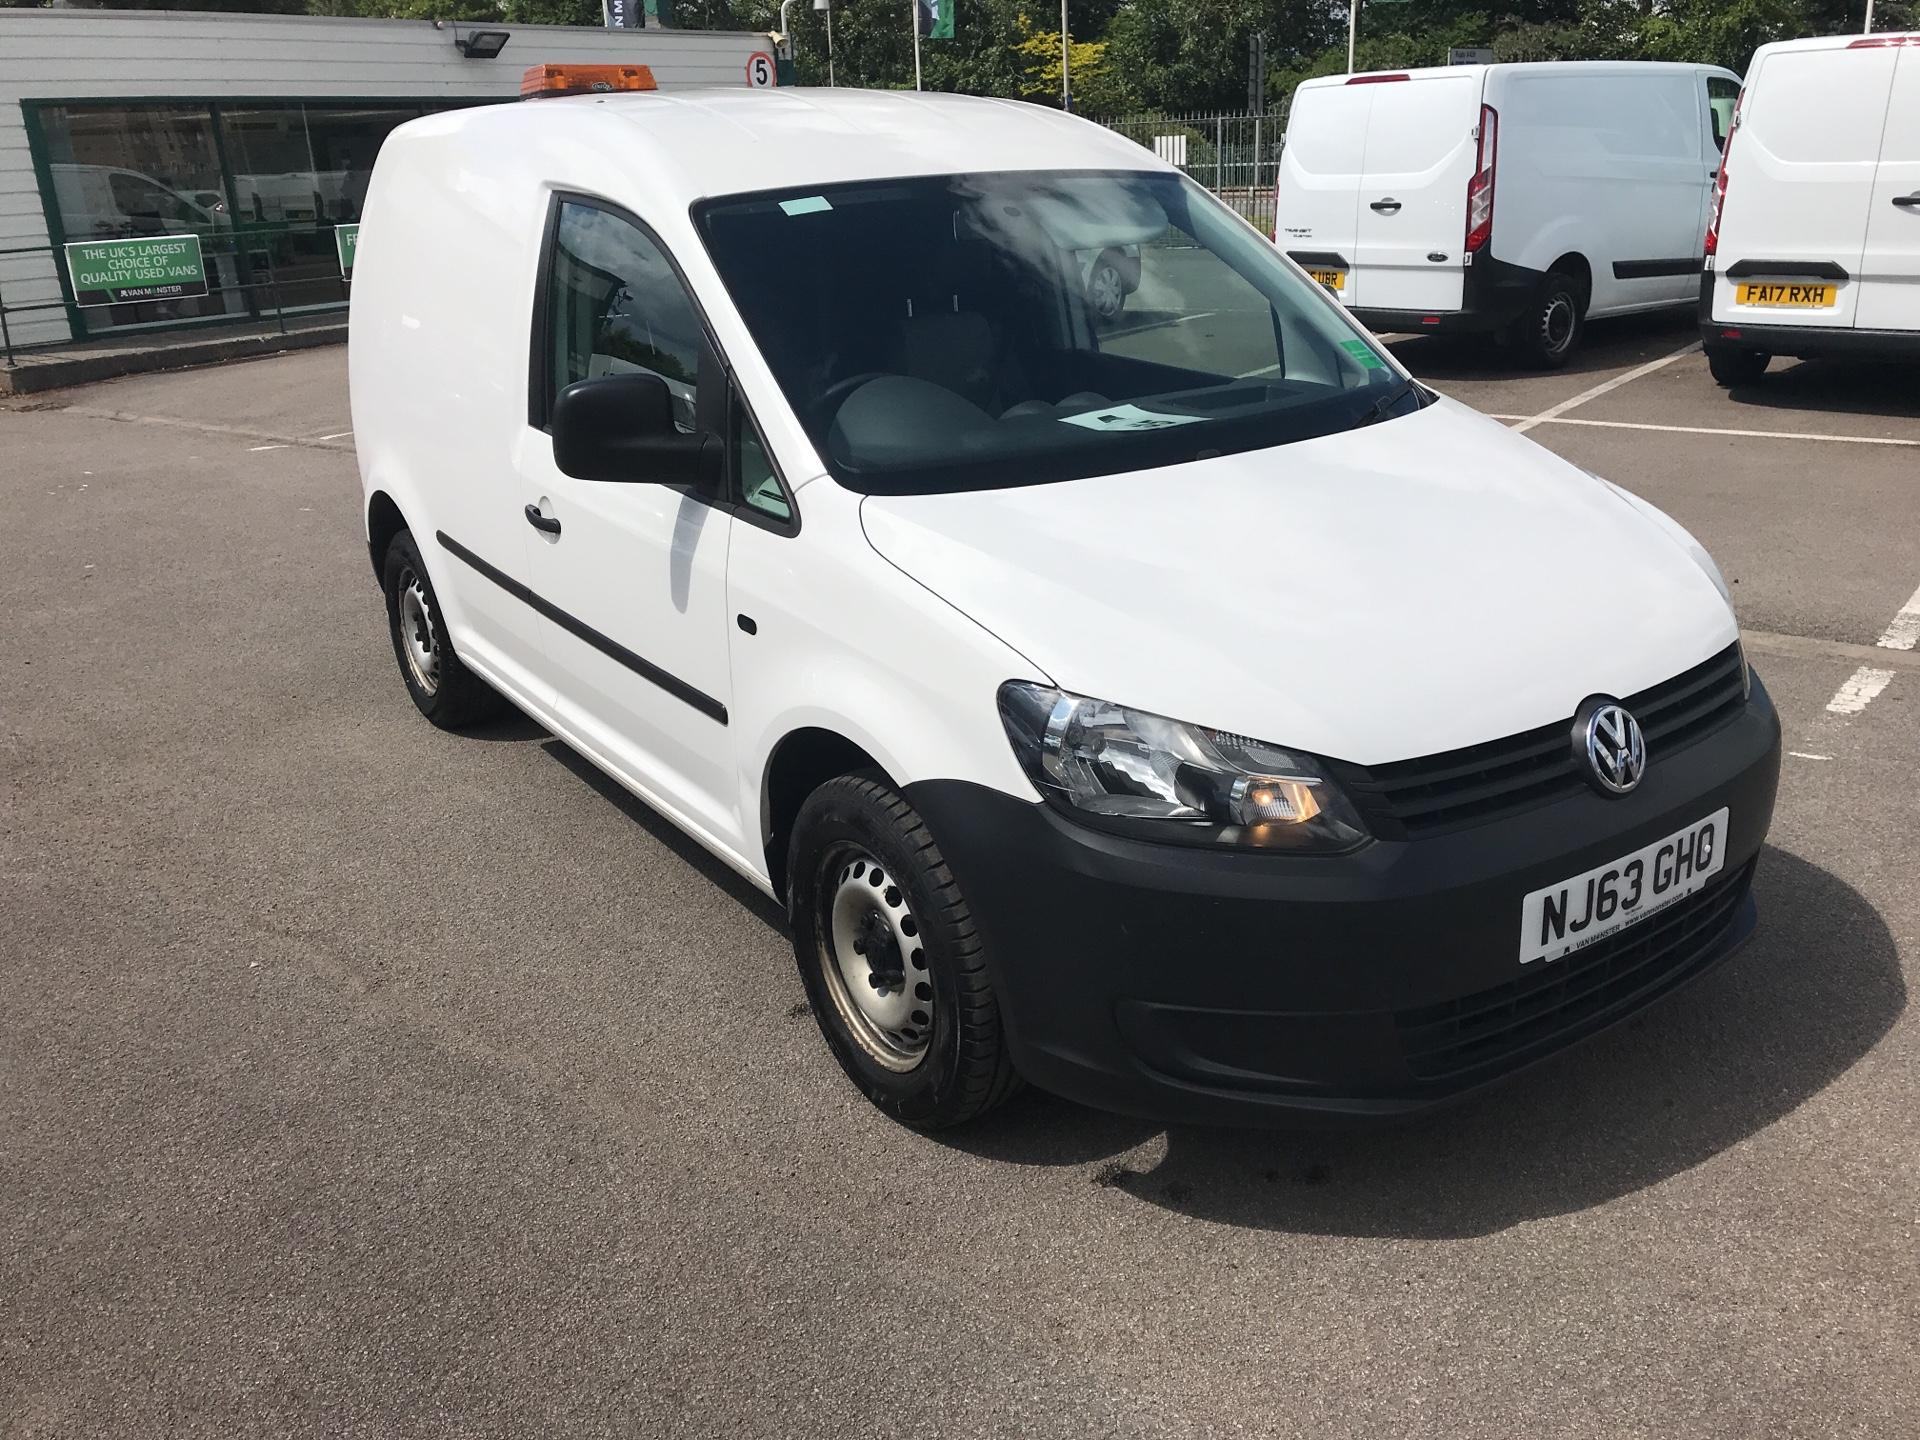 2013 Volkswagen Caddy 1.6TDI 75PS VAN EURO 5 (NJ63GHO)